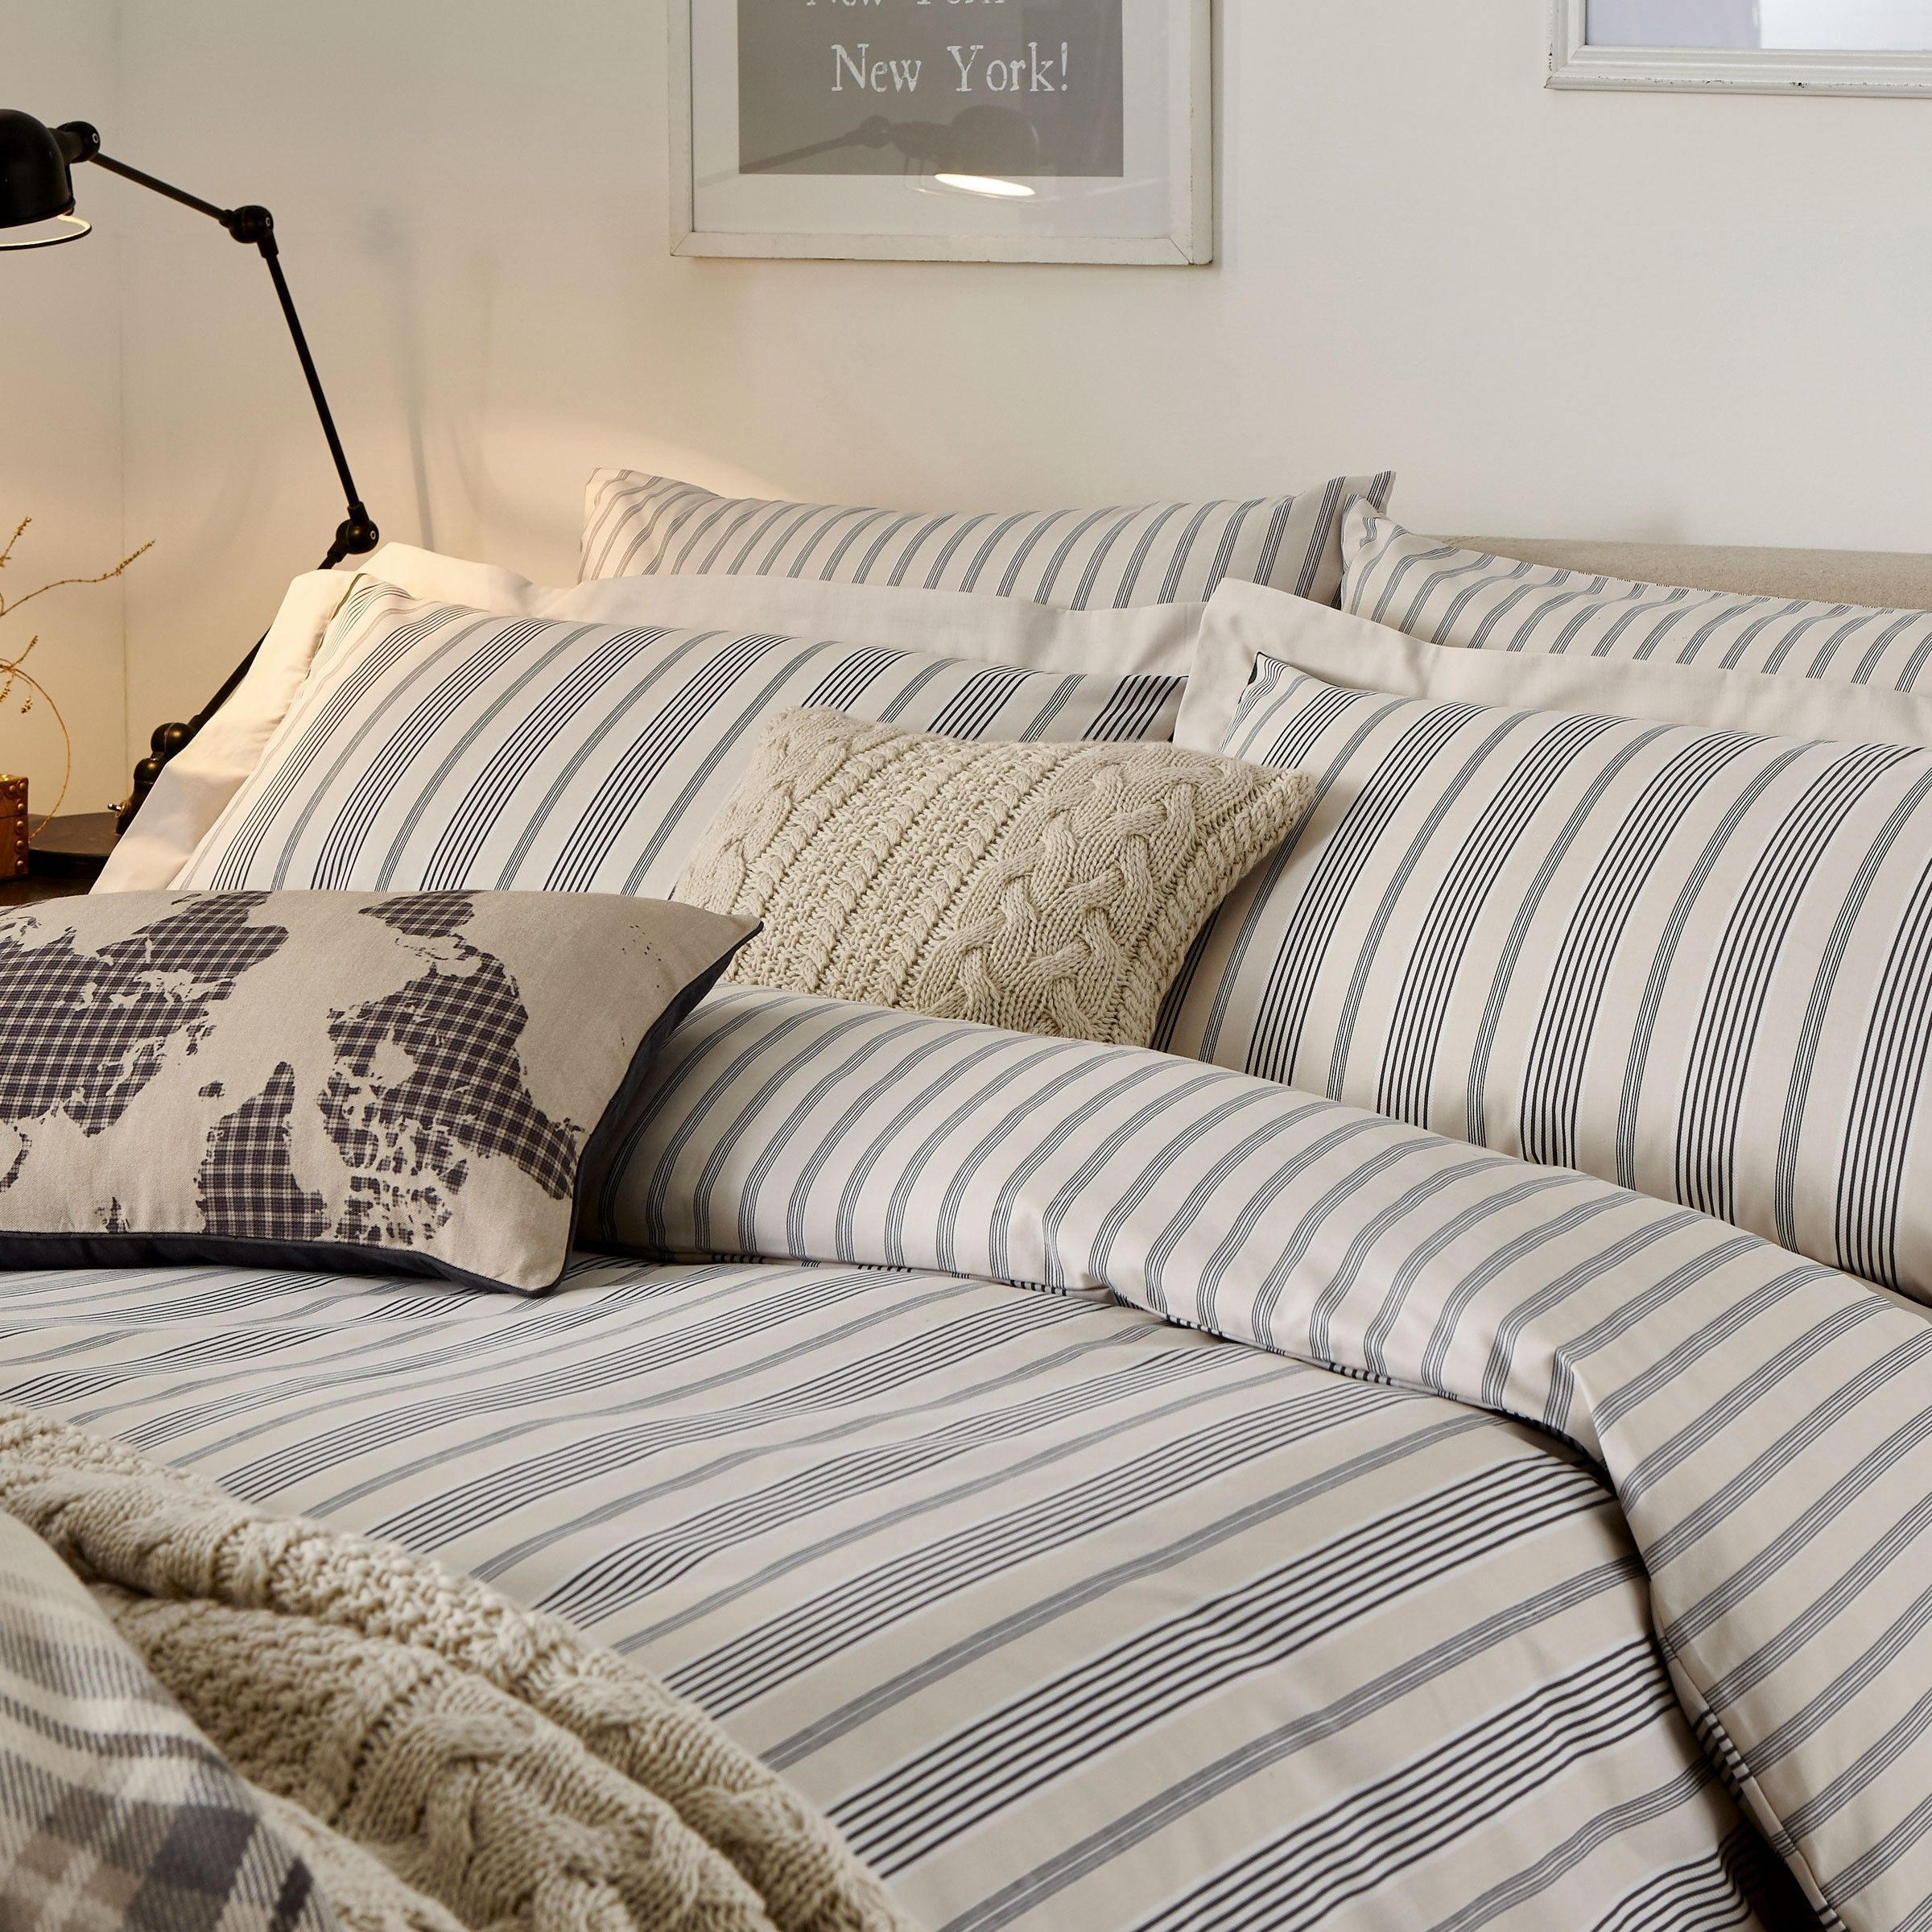 charcoal grey striped bedding  oakley bed linen at bedeck   - charcoal grey striped bedding  oakley bed linen at bedeck